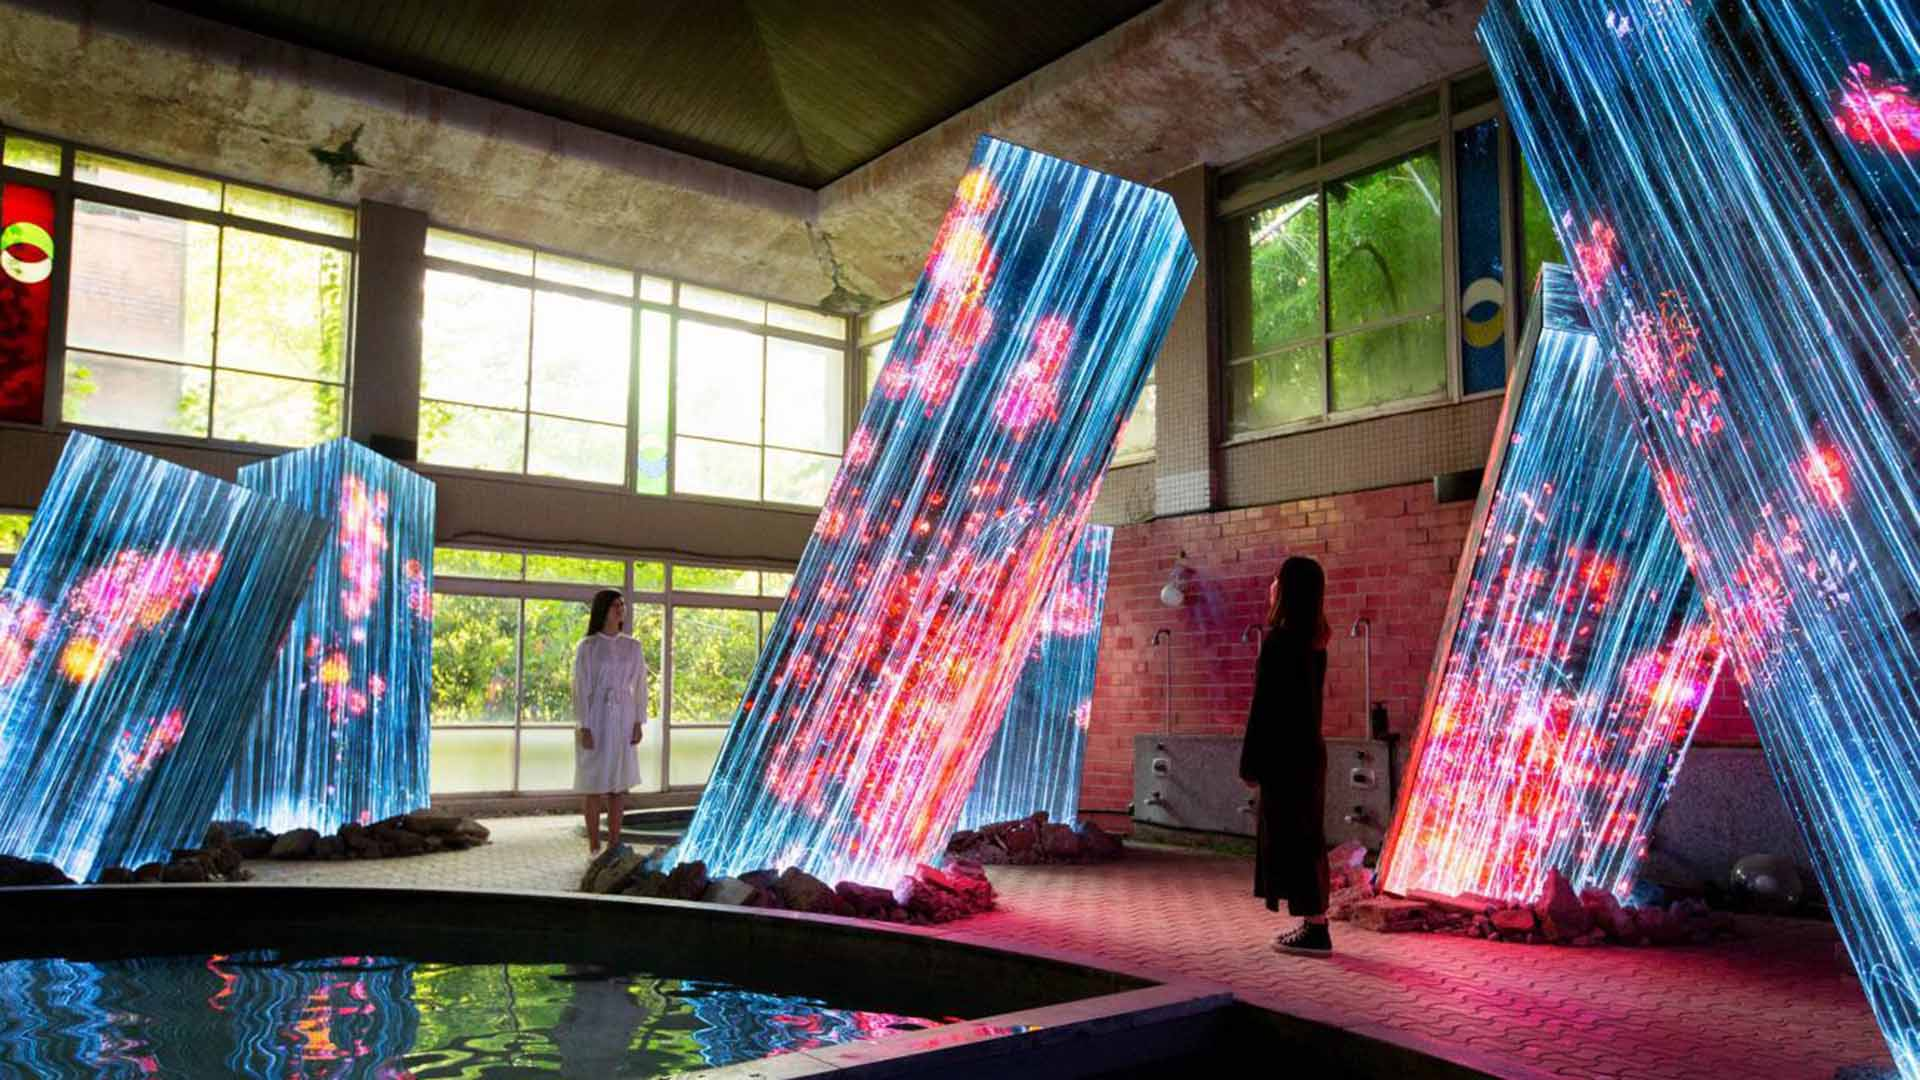 Teamlab's Latest Eye-Popping Site Combines Historic Ruins, Dazzling Digital Art and a Sauna